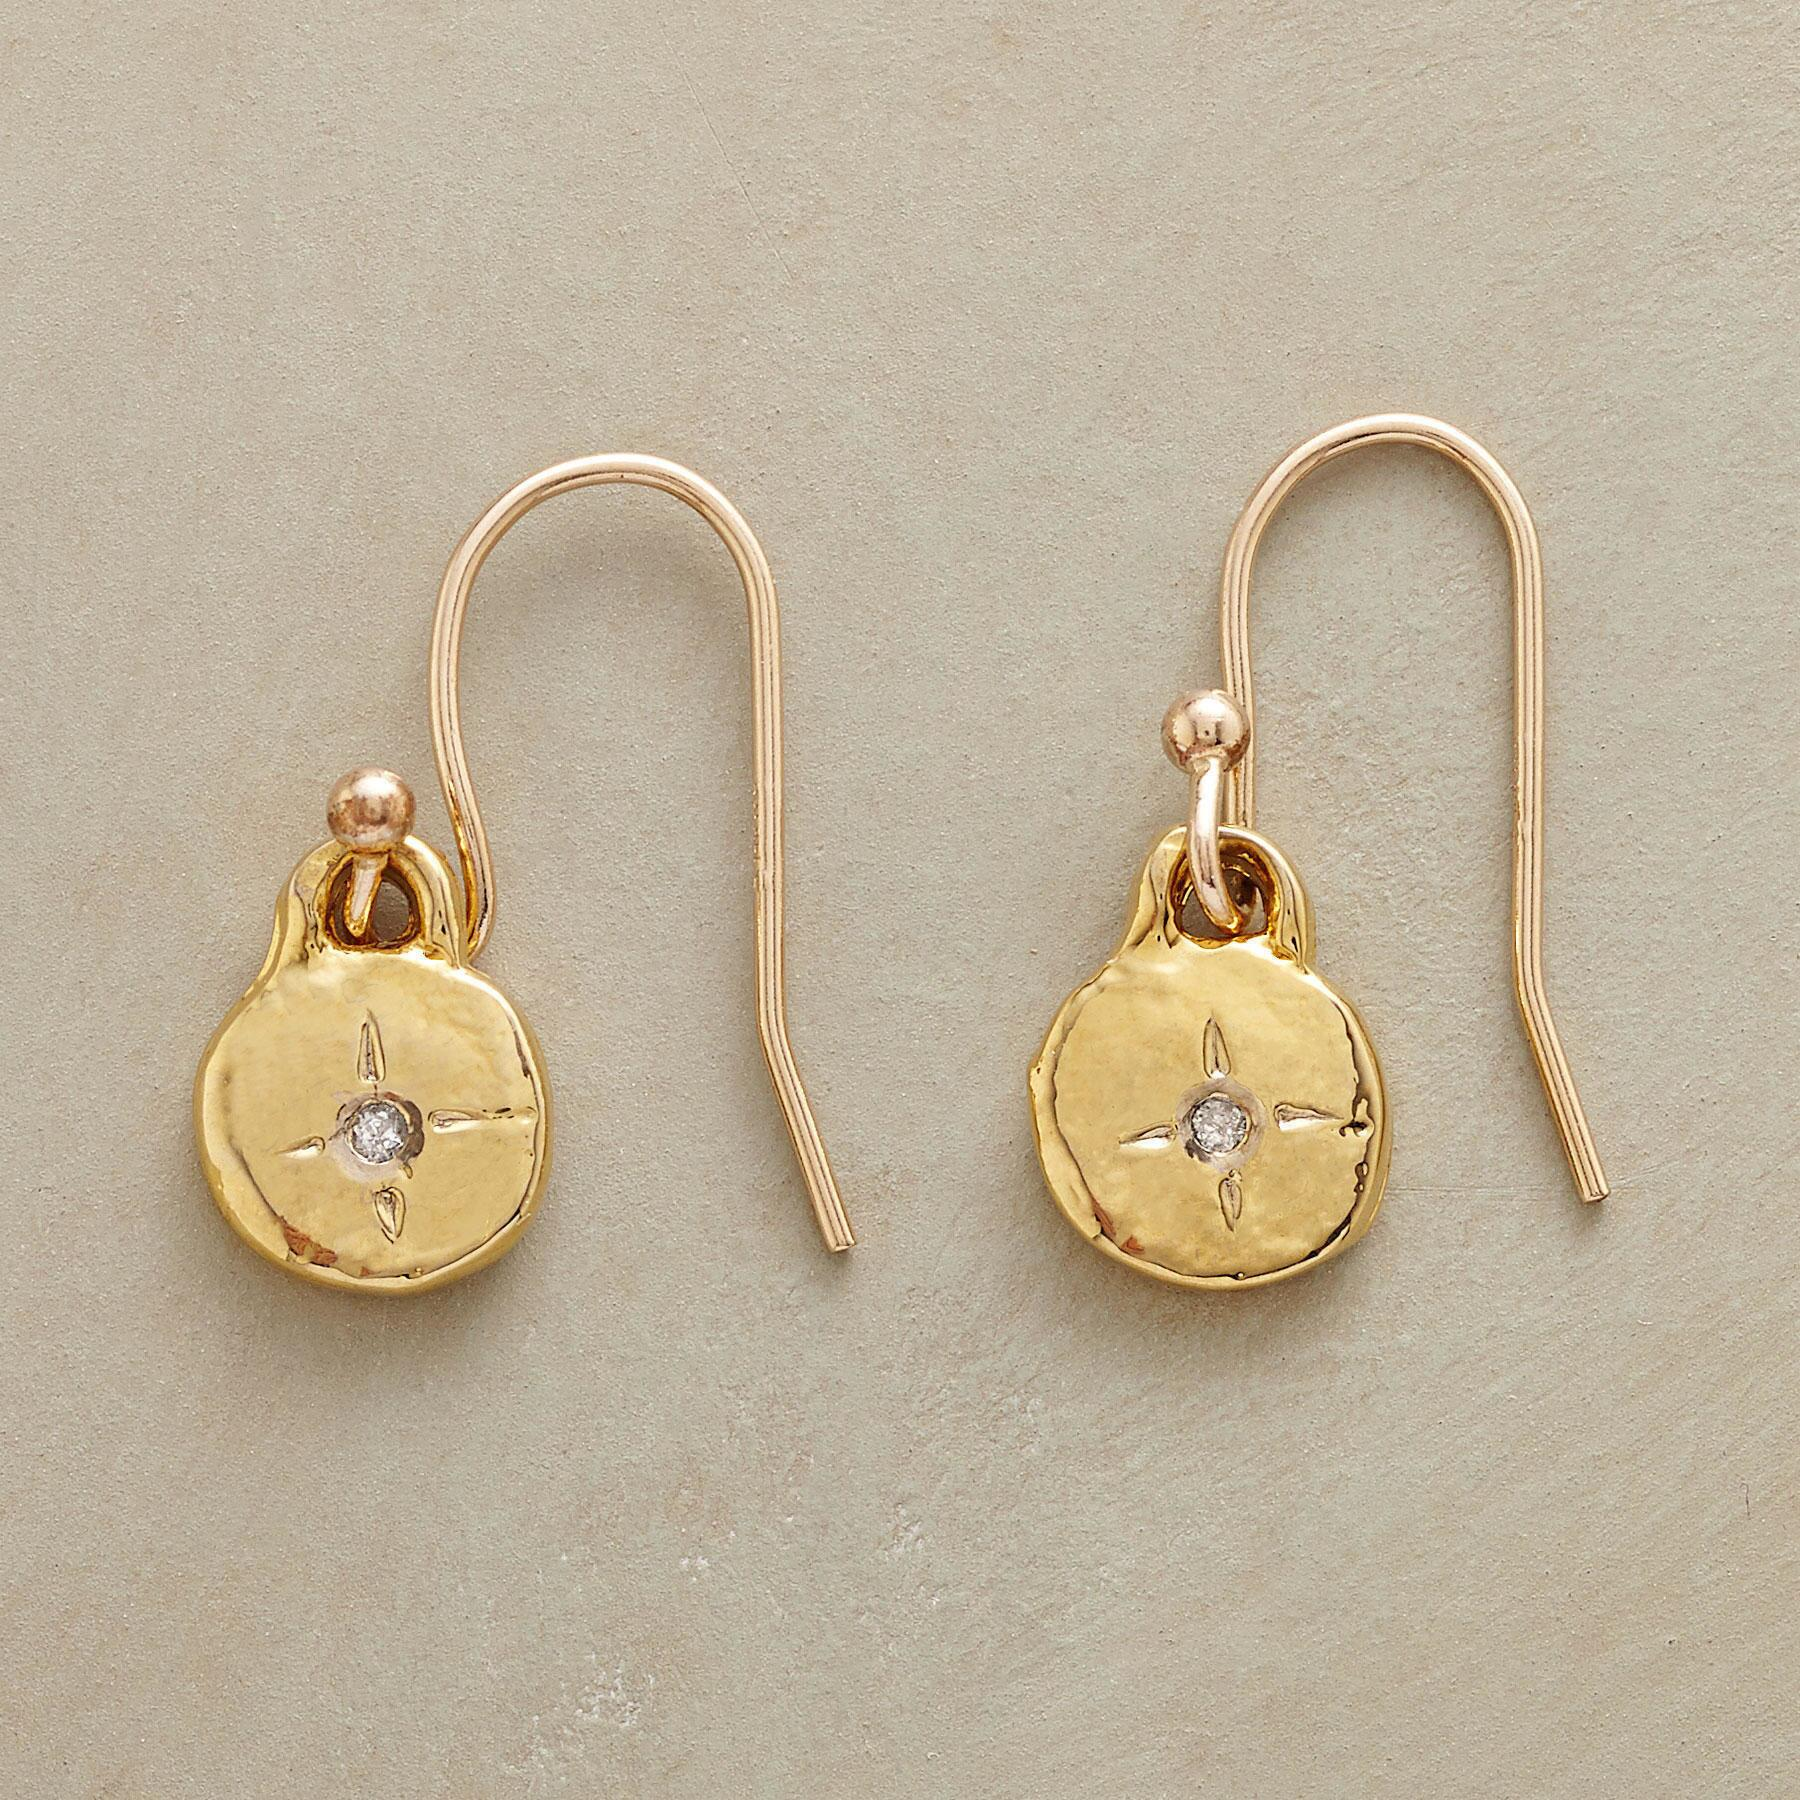 GOLD-FILLED LITTLE BIT EARRINGS: View 1